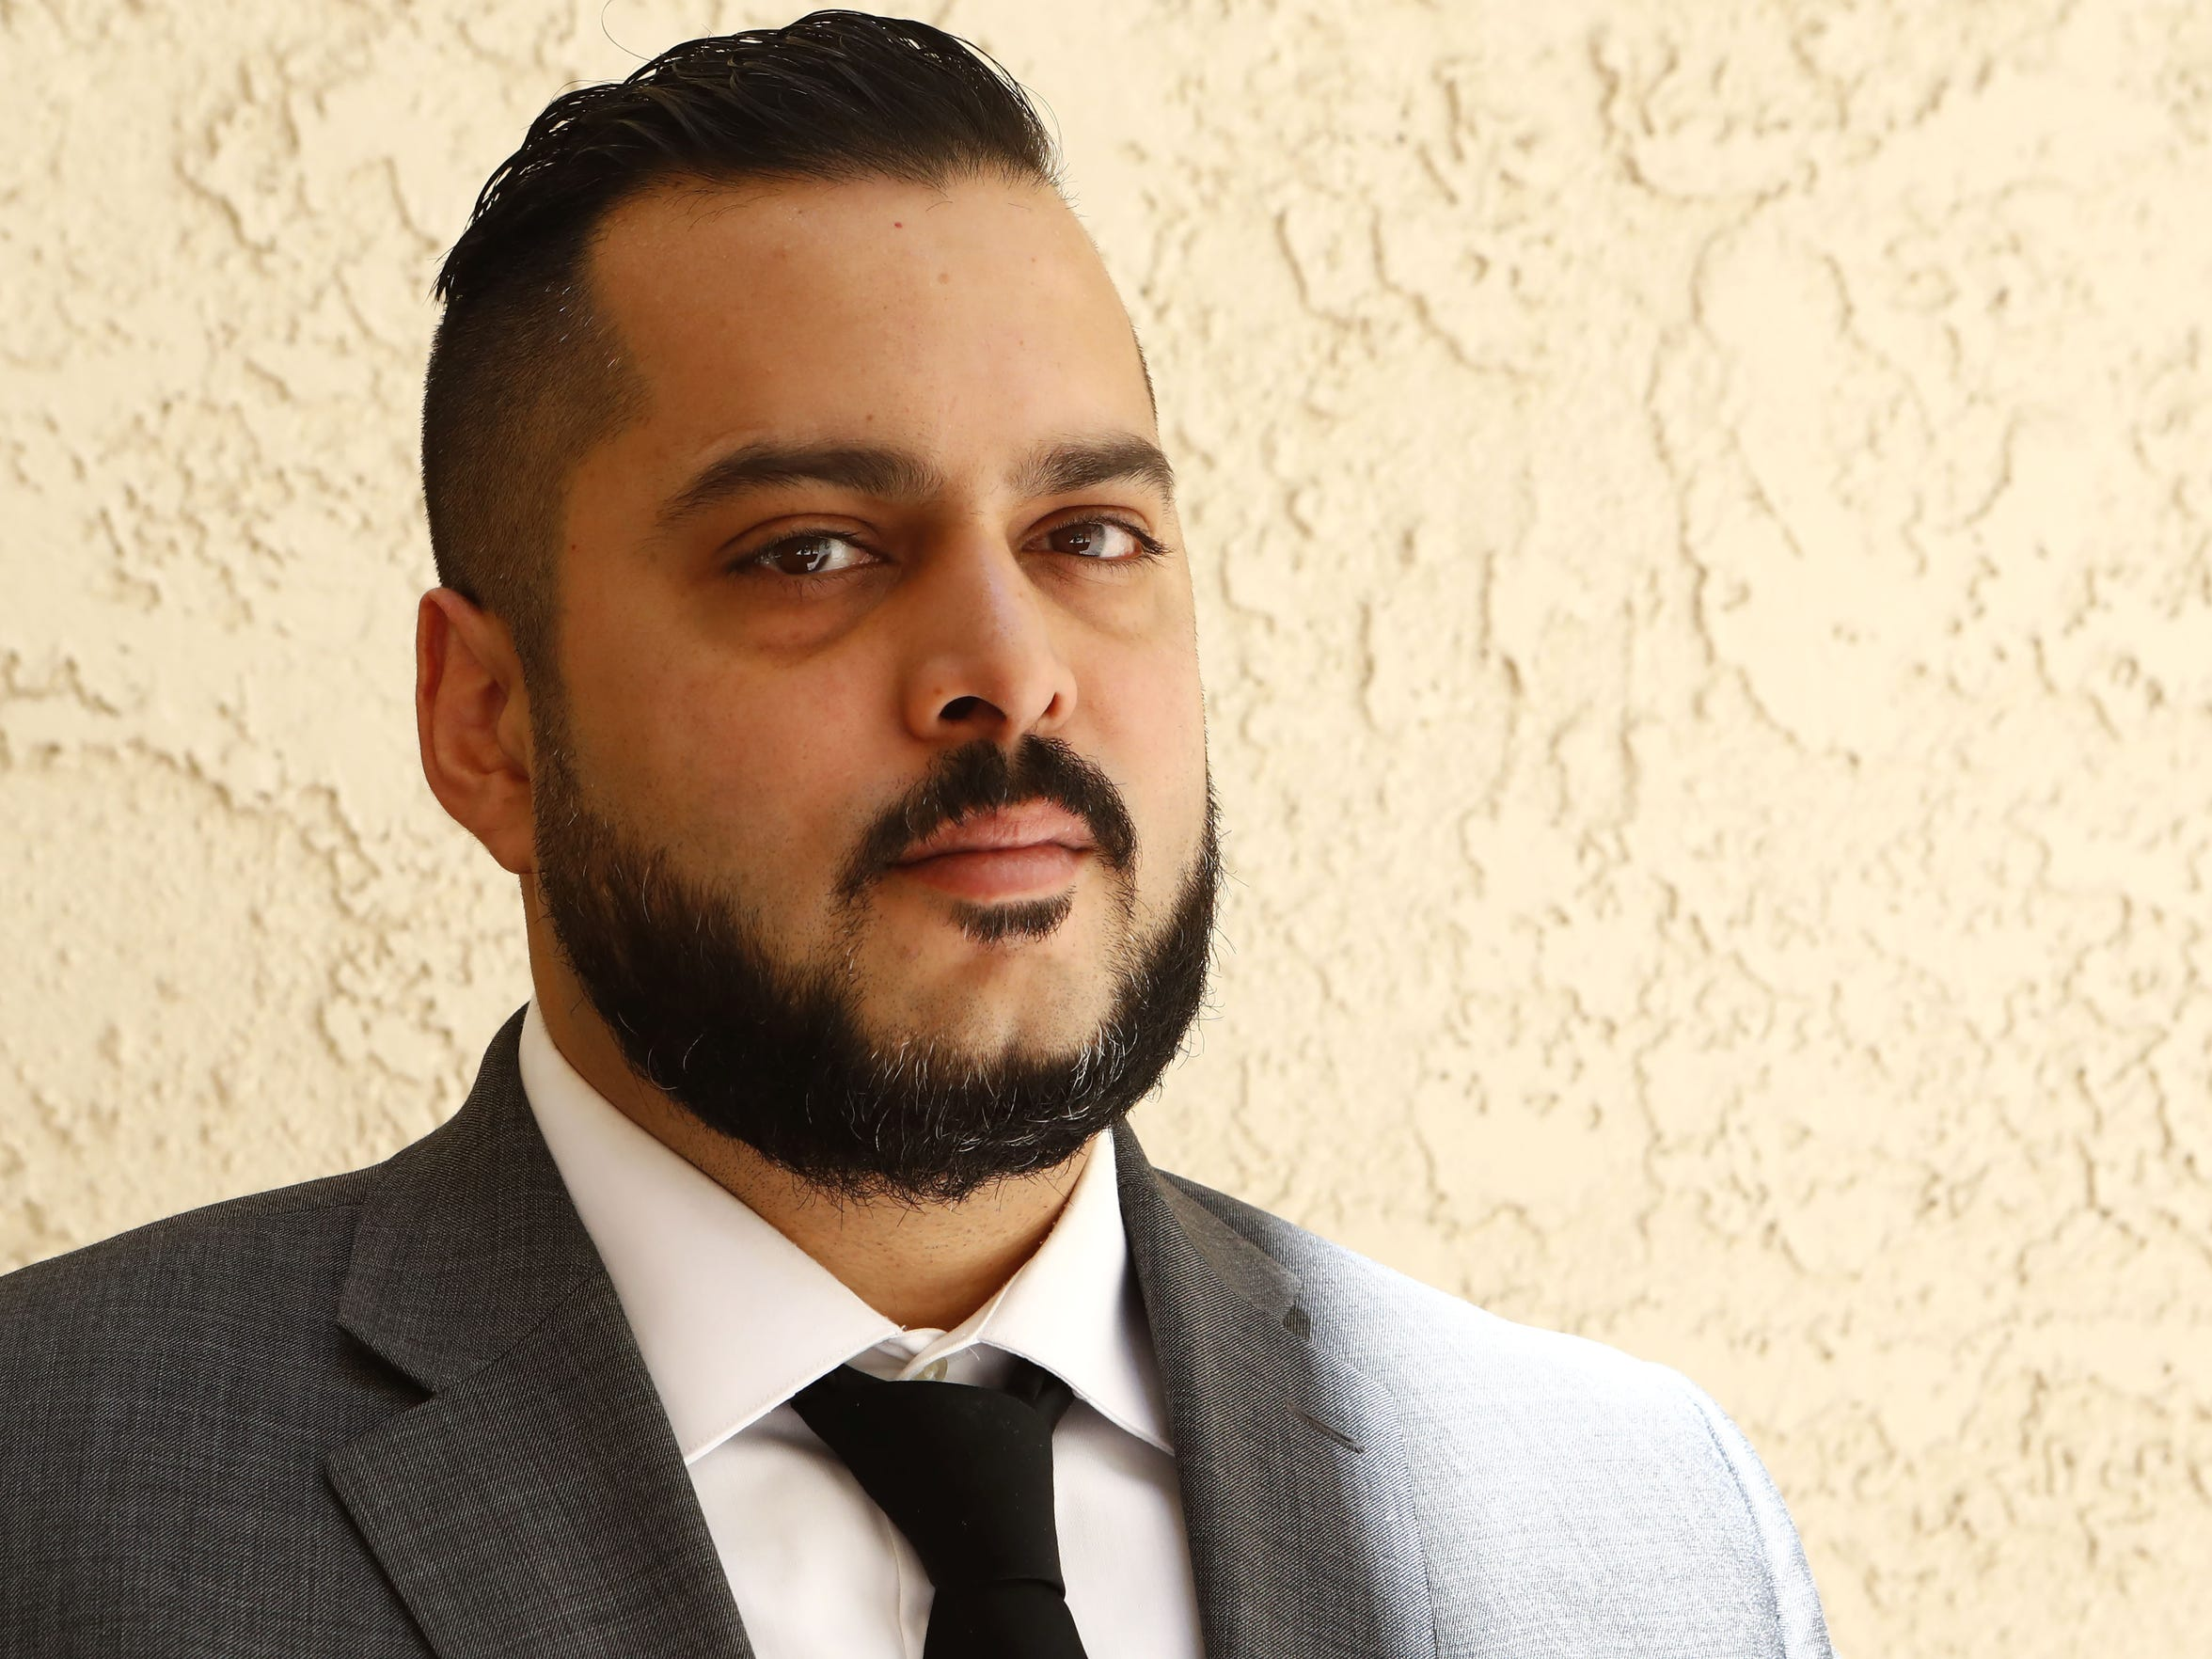 Imraan Siddiqi is the executive director of the Council